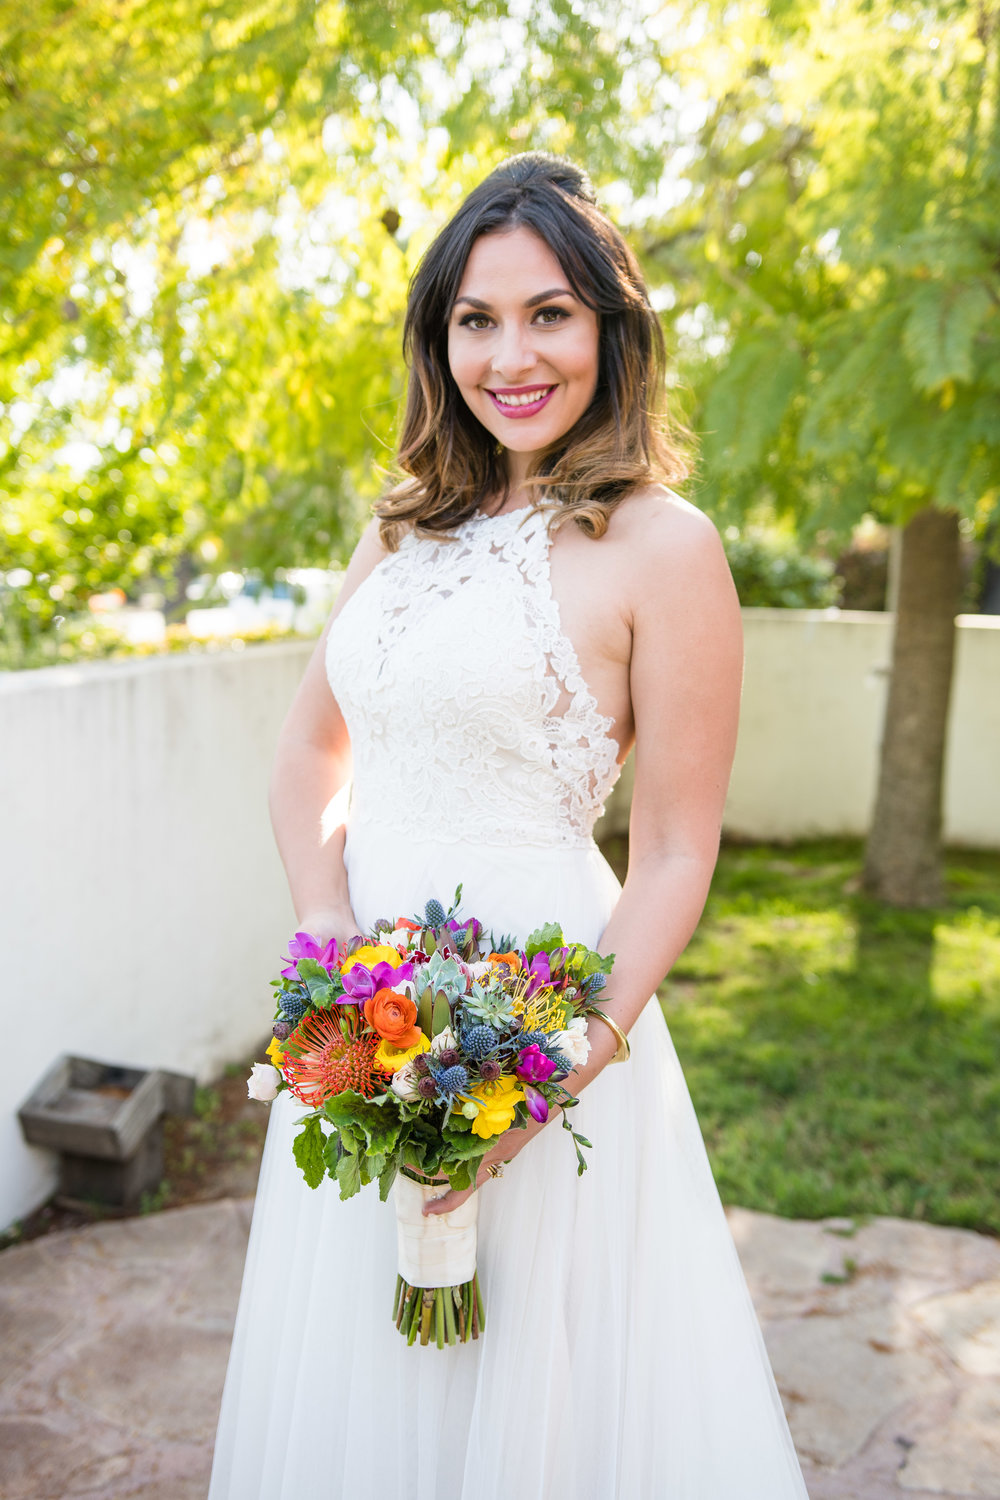 Vibrant Fiesta Backyard Wedding Reception beautiful bride and stunning spring bouquet.jpg